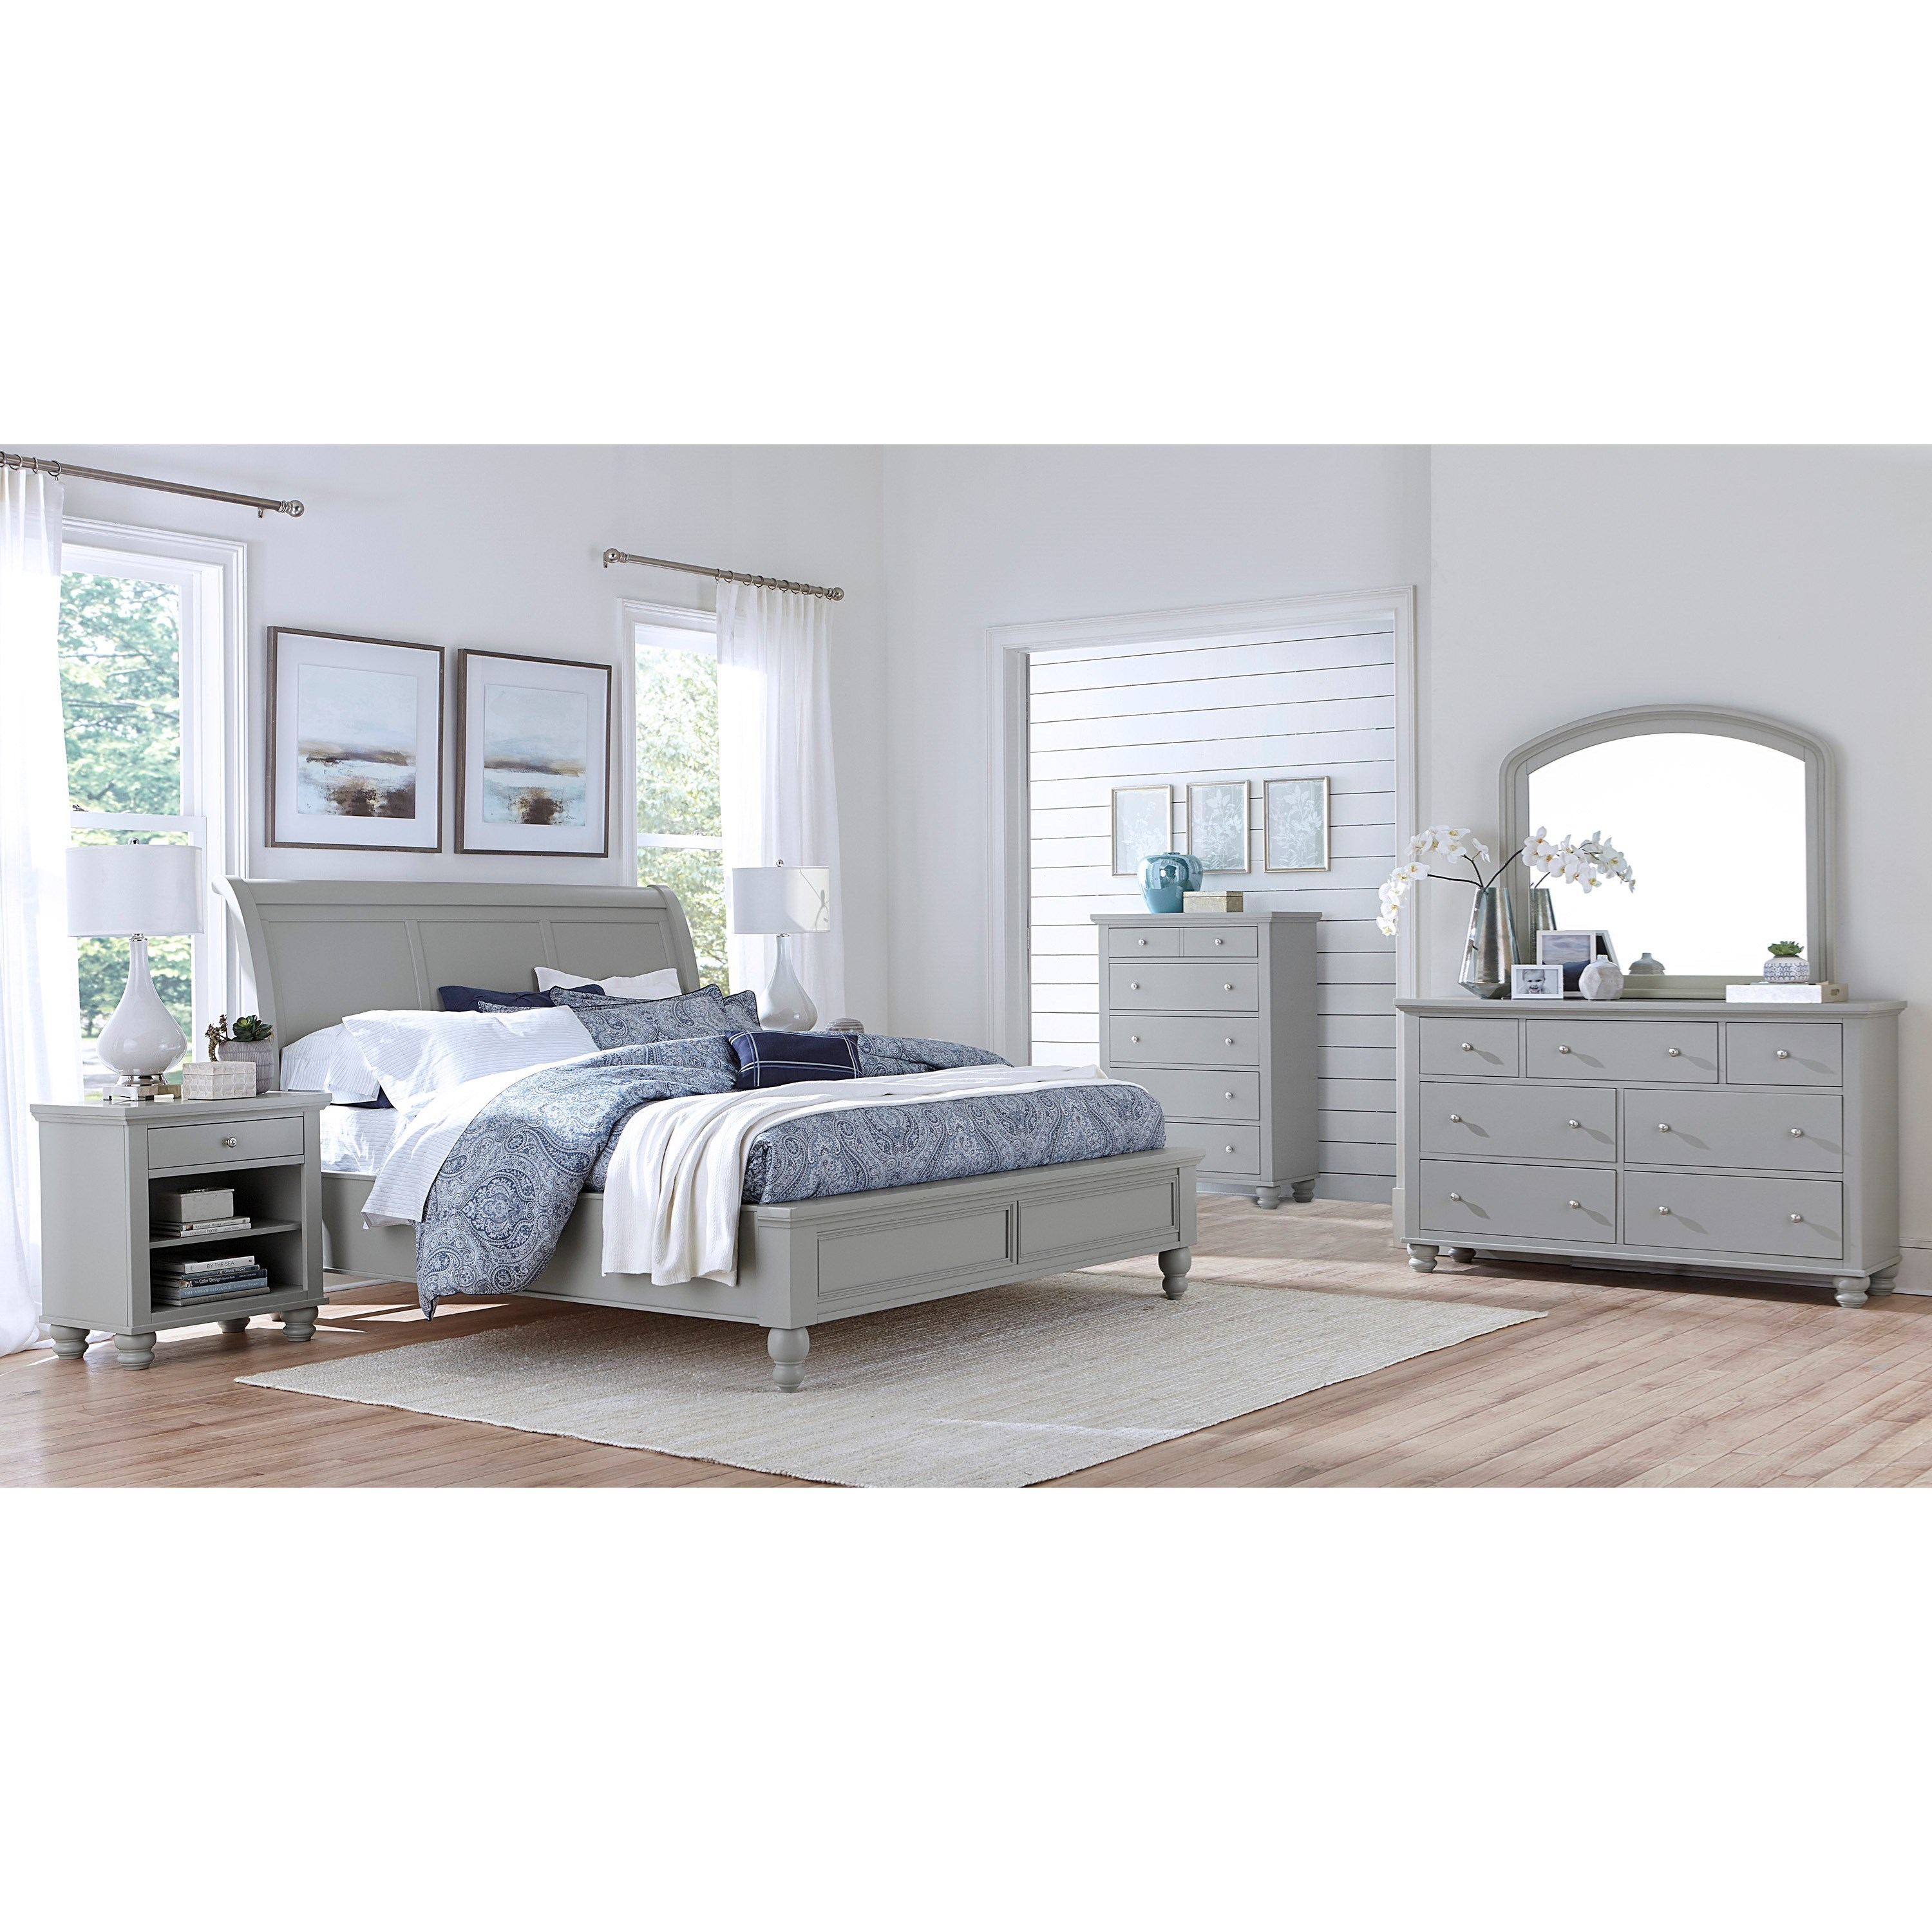 Cambridge King Bedroom Group by Aspenhome at Walker's Furniture